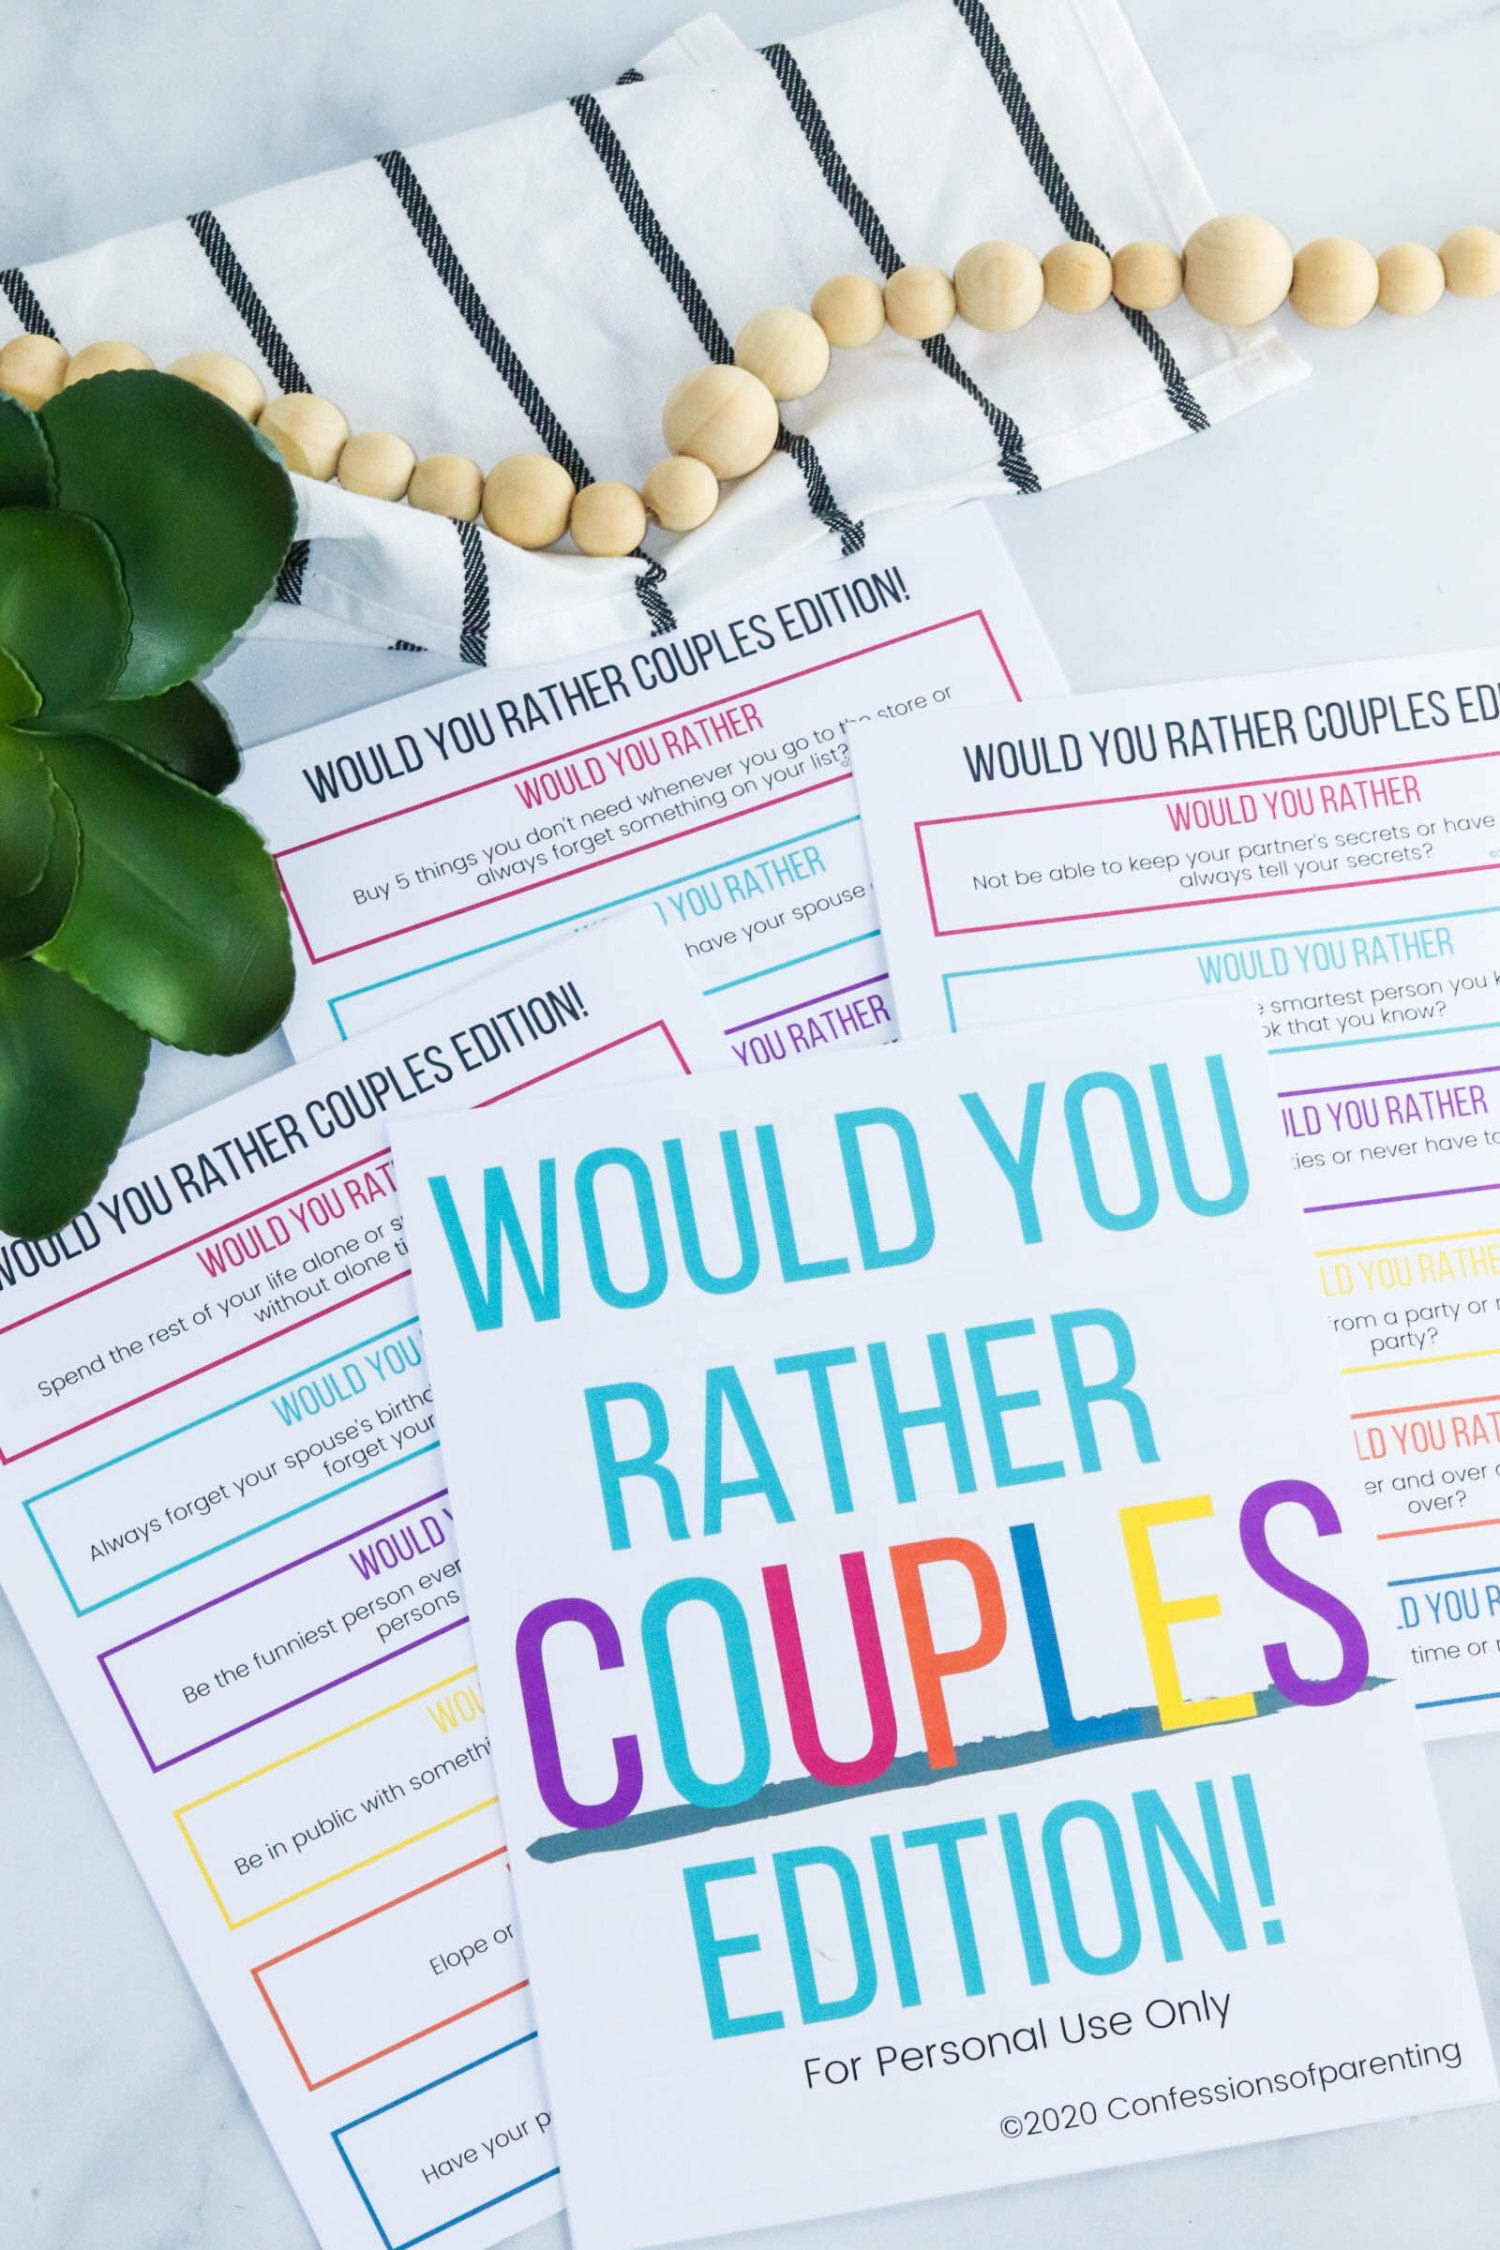 Spice up your daily routine with these fun Would You Rather Questions for couples. Would You Rather is the perfect game for the next in-home date night with your spouse.